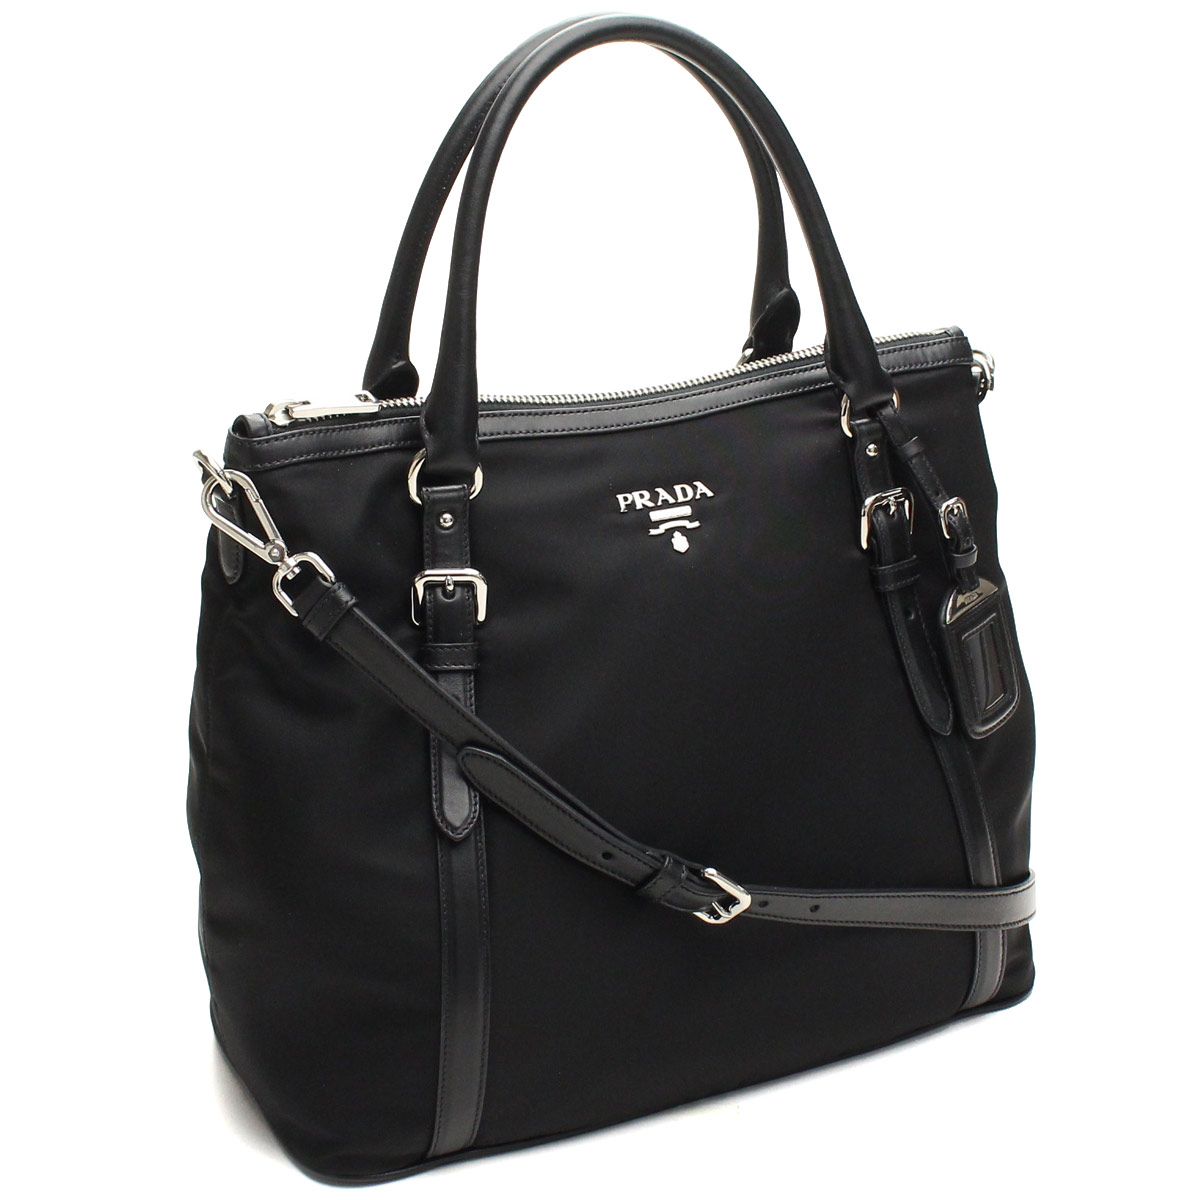 e9986436edb435 )Prada outlet PRADA (OUTLET) tote bag BR5116-O-QXO-F0002 NERO black(  taxfree/send by EMS/authentic/A brand new item ) | Rakuten Global Market